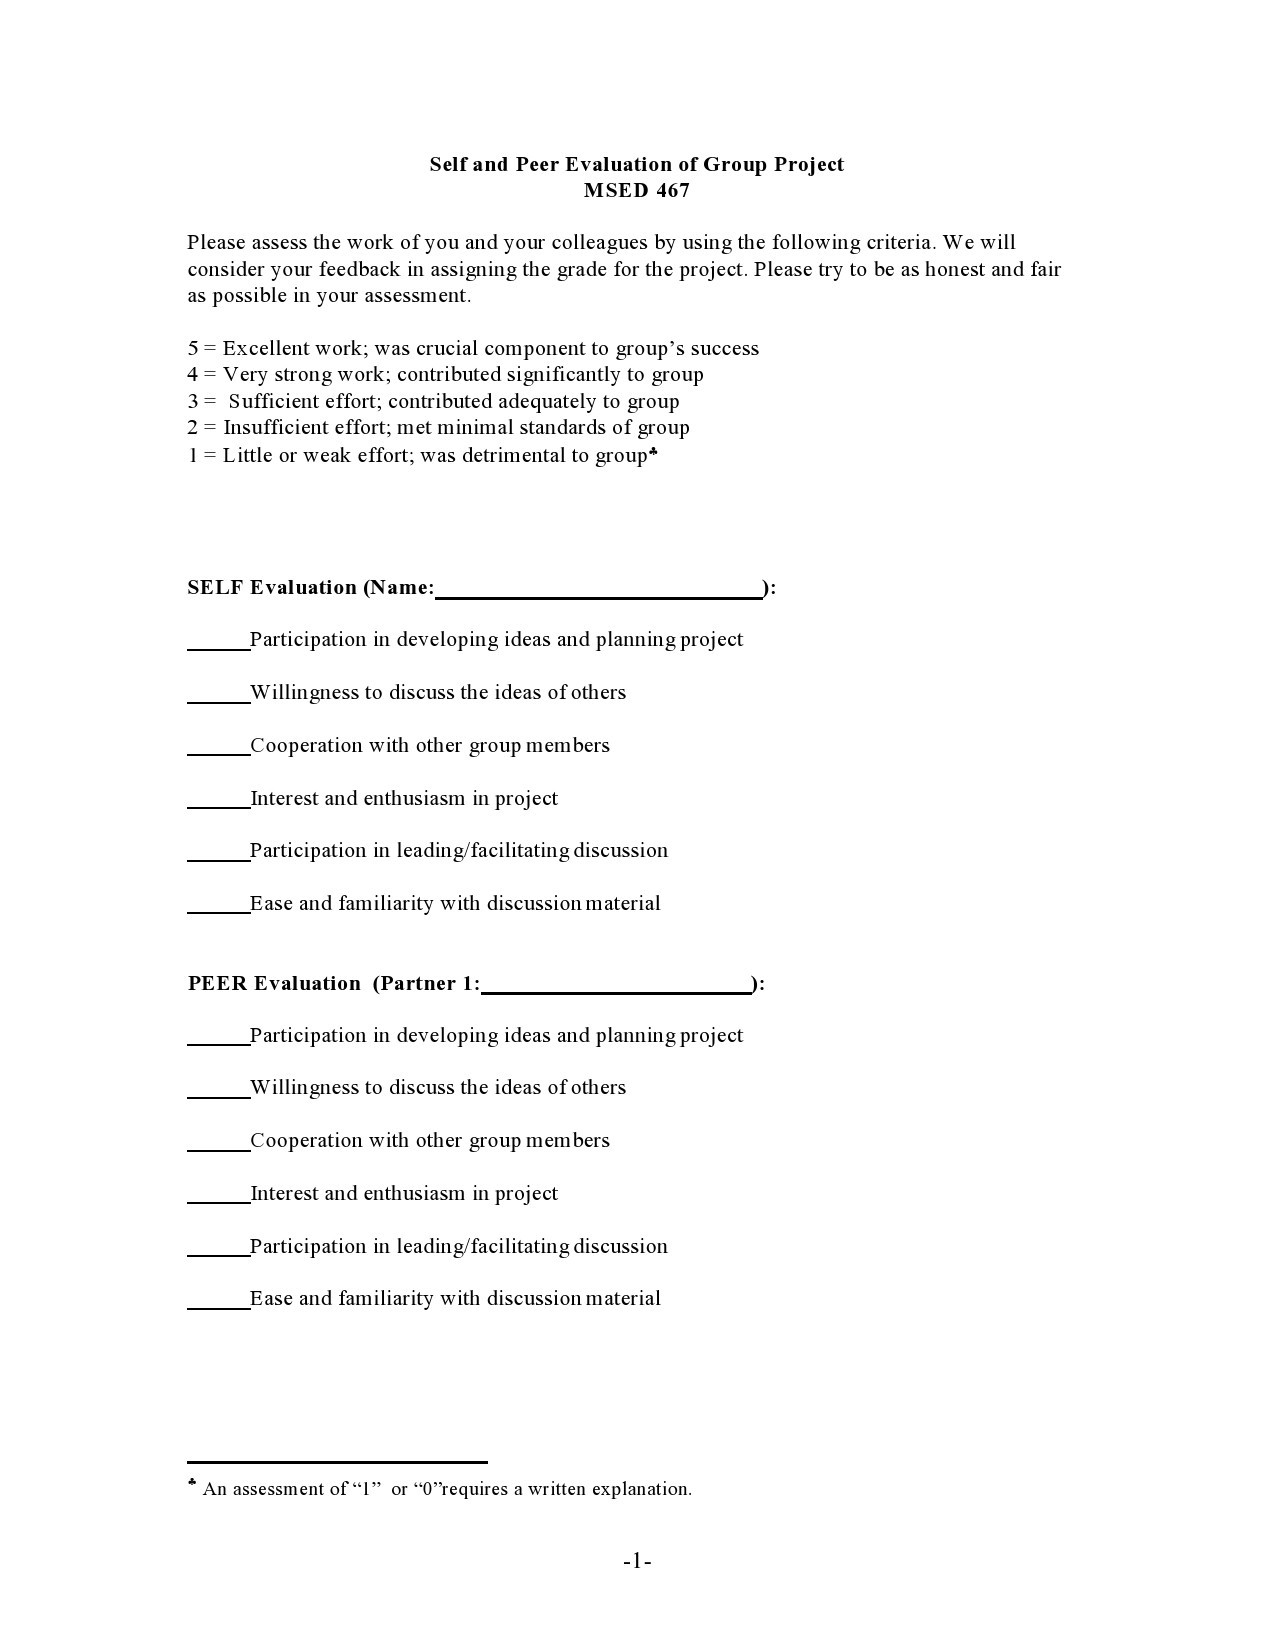 Free peer evaluation form 03